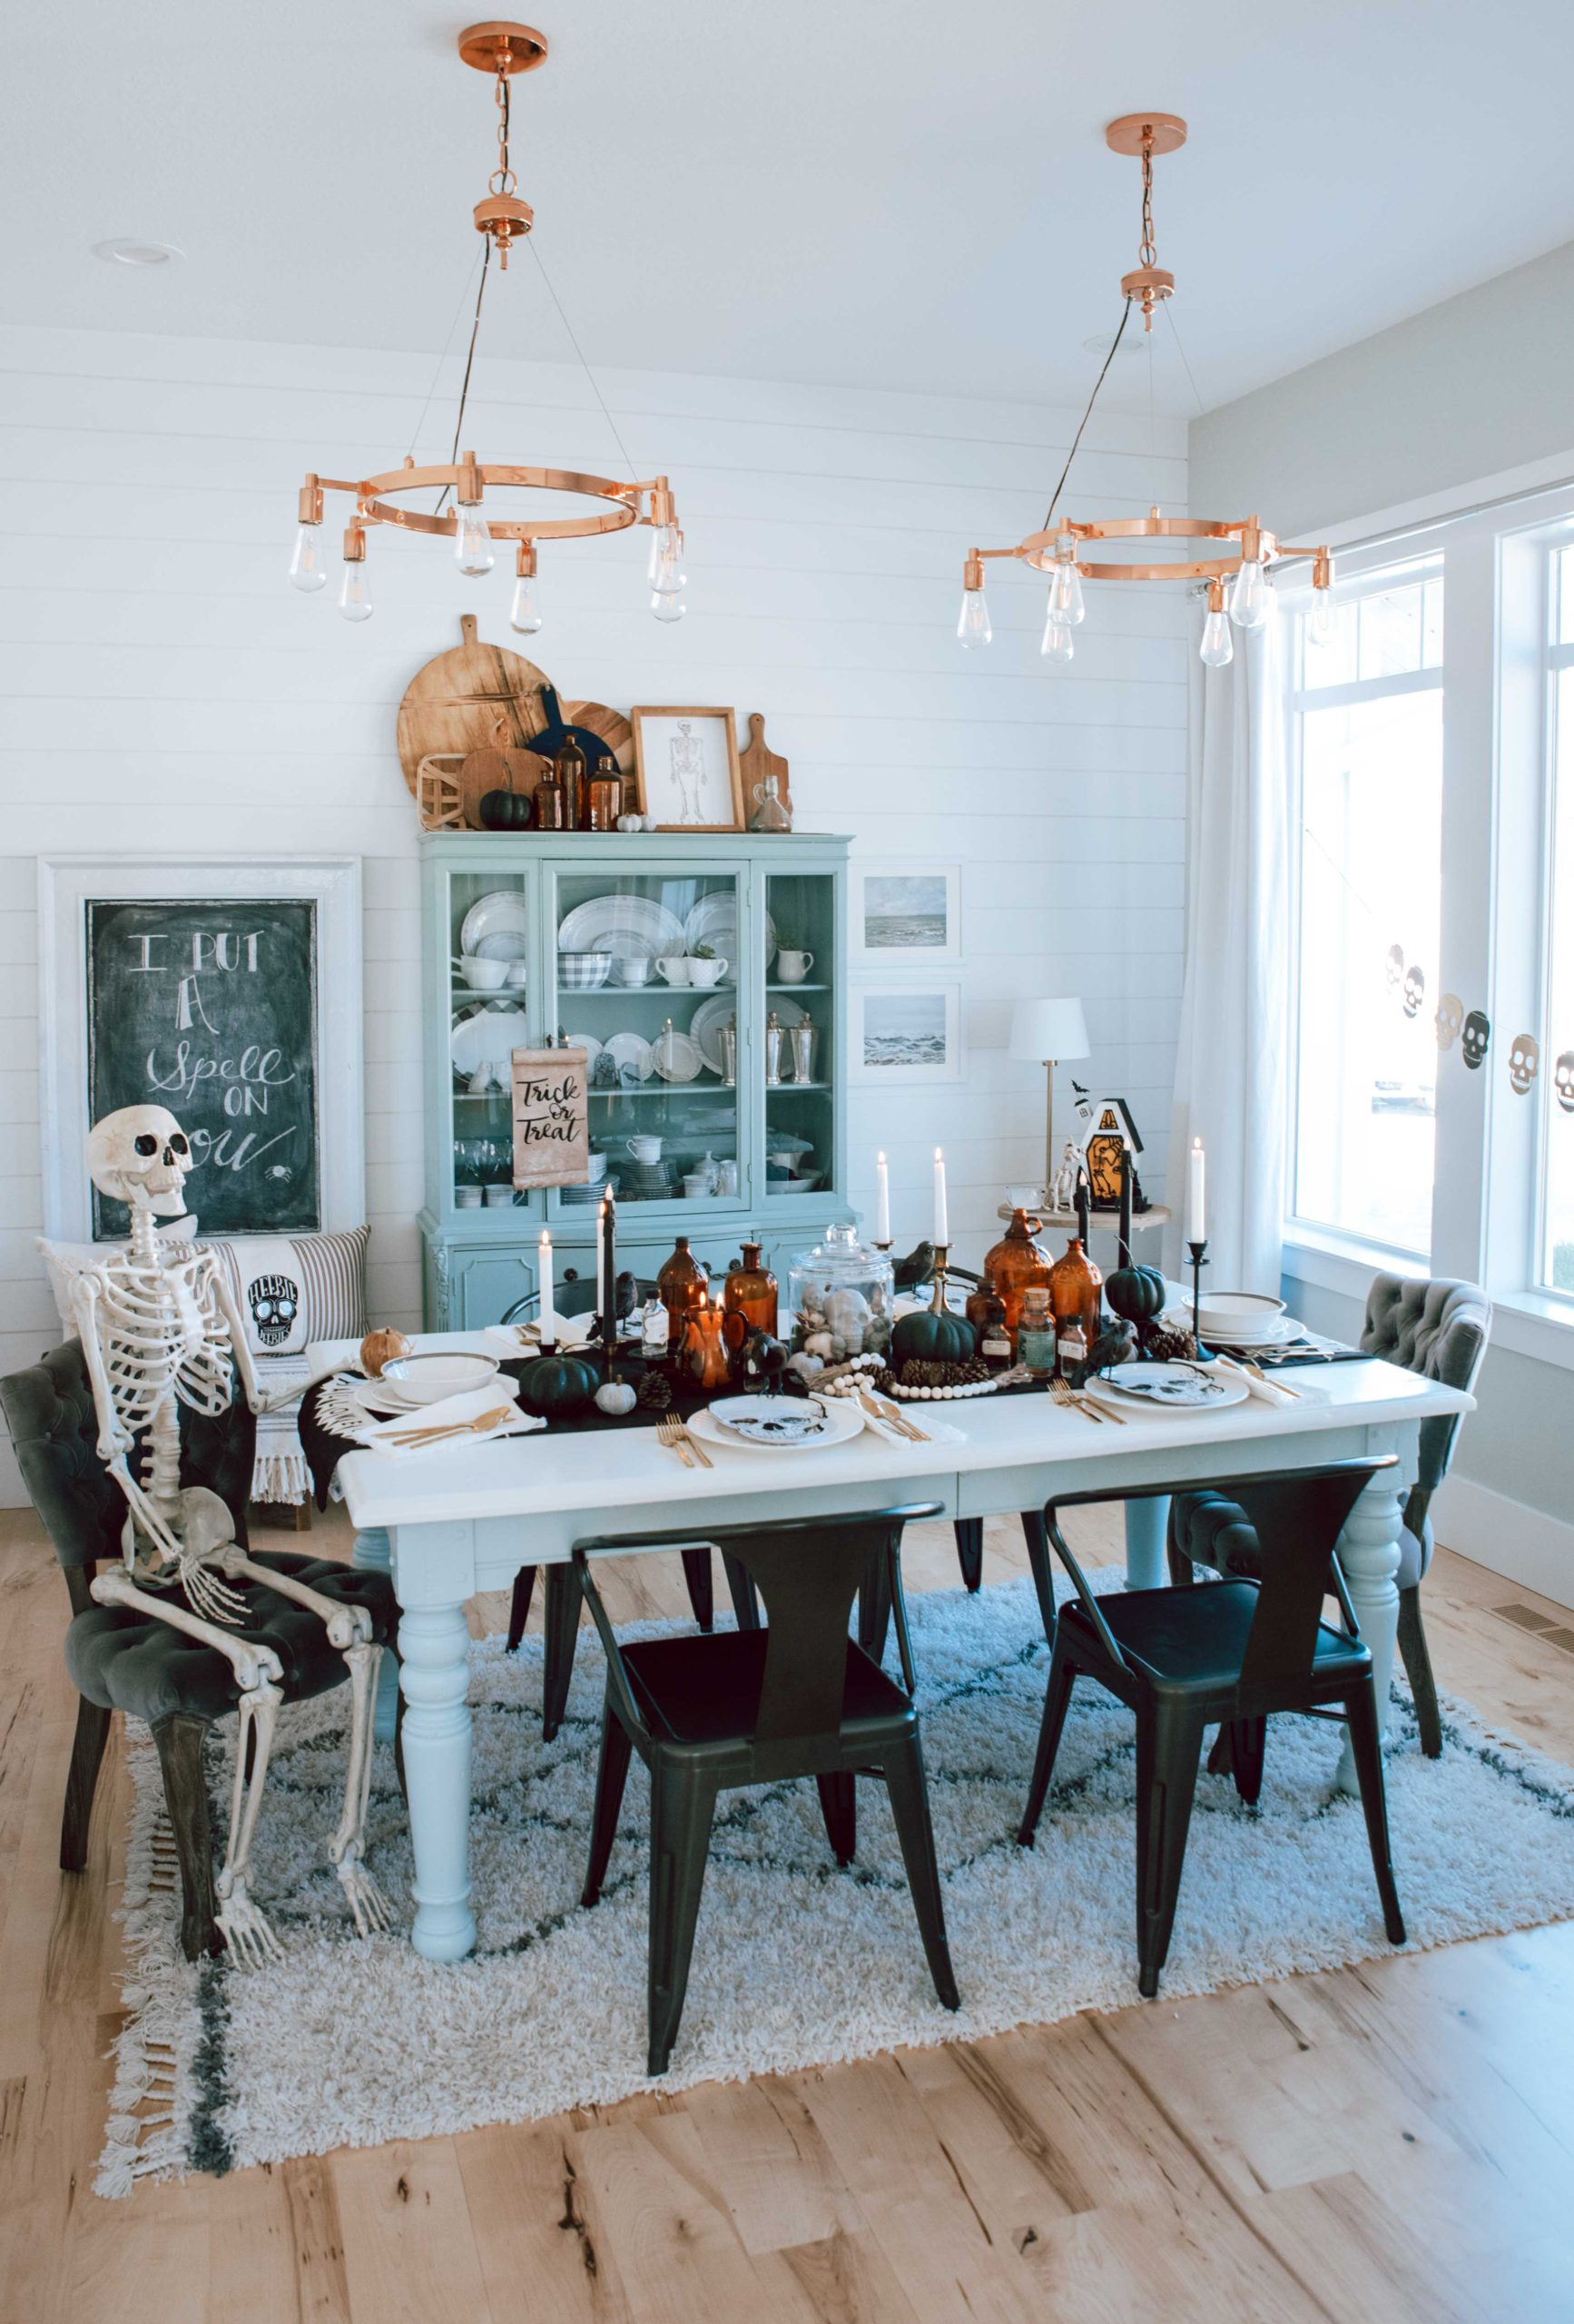 Halloween 2020 Valley View Home   Valley View Abode